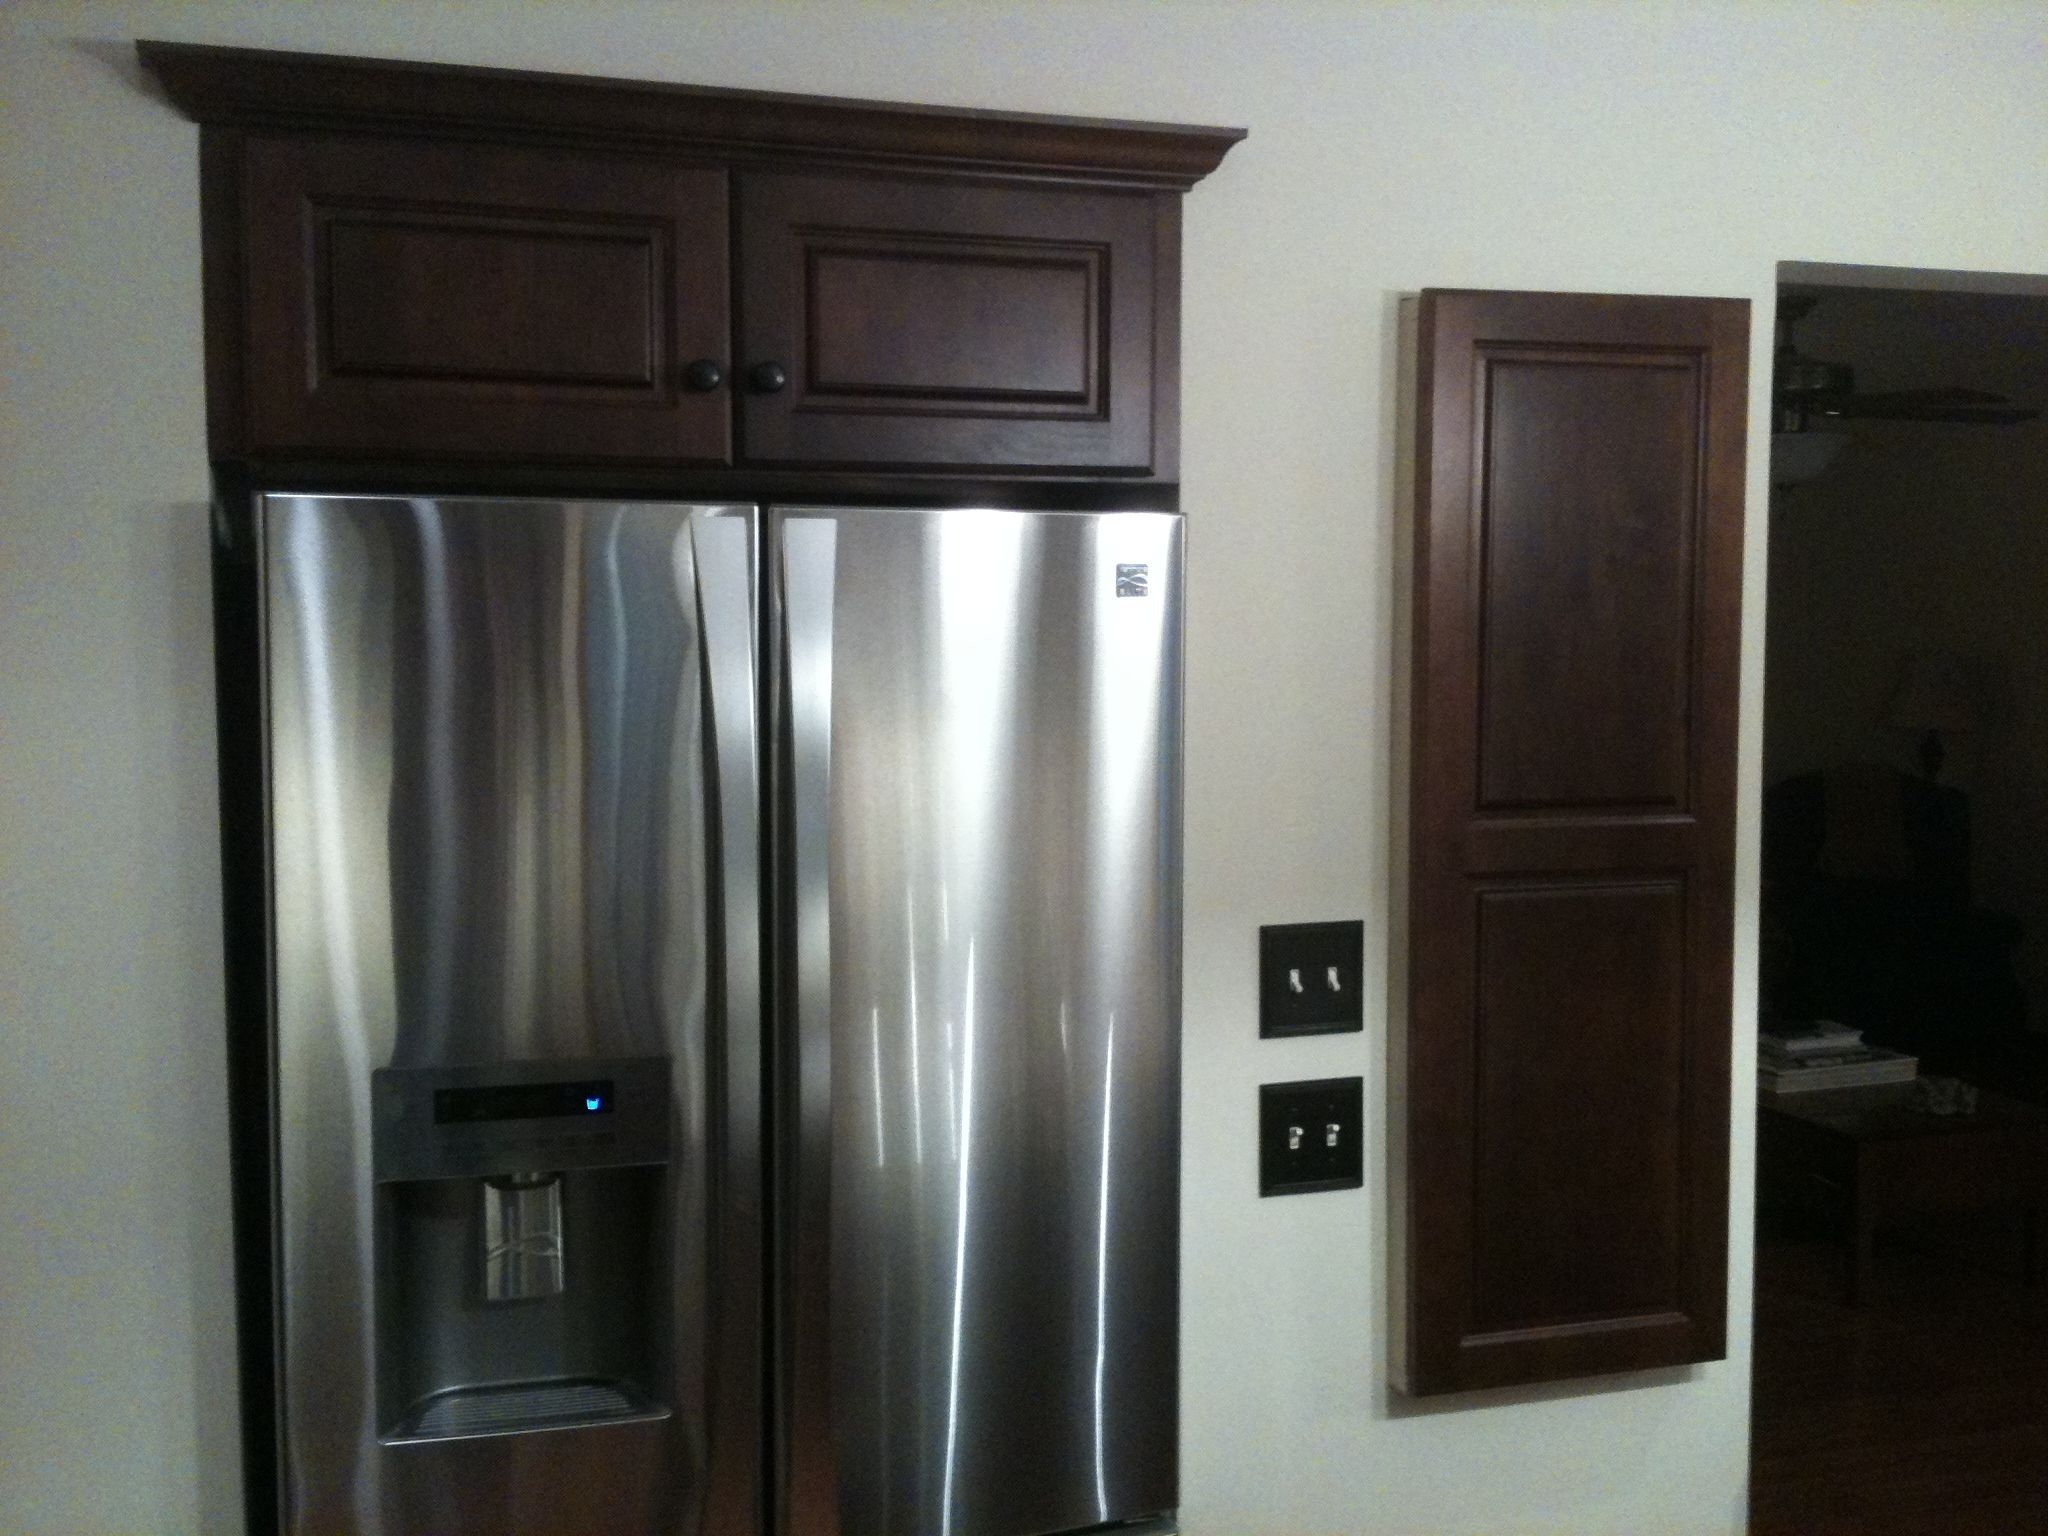 Recessed Fridge wWall Cabinet inset above it  Custom